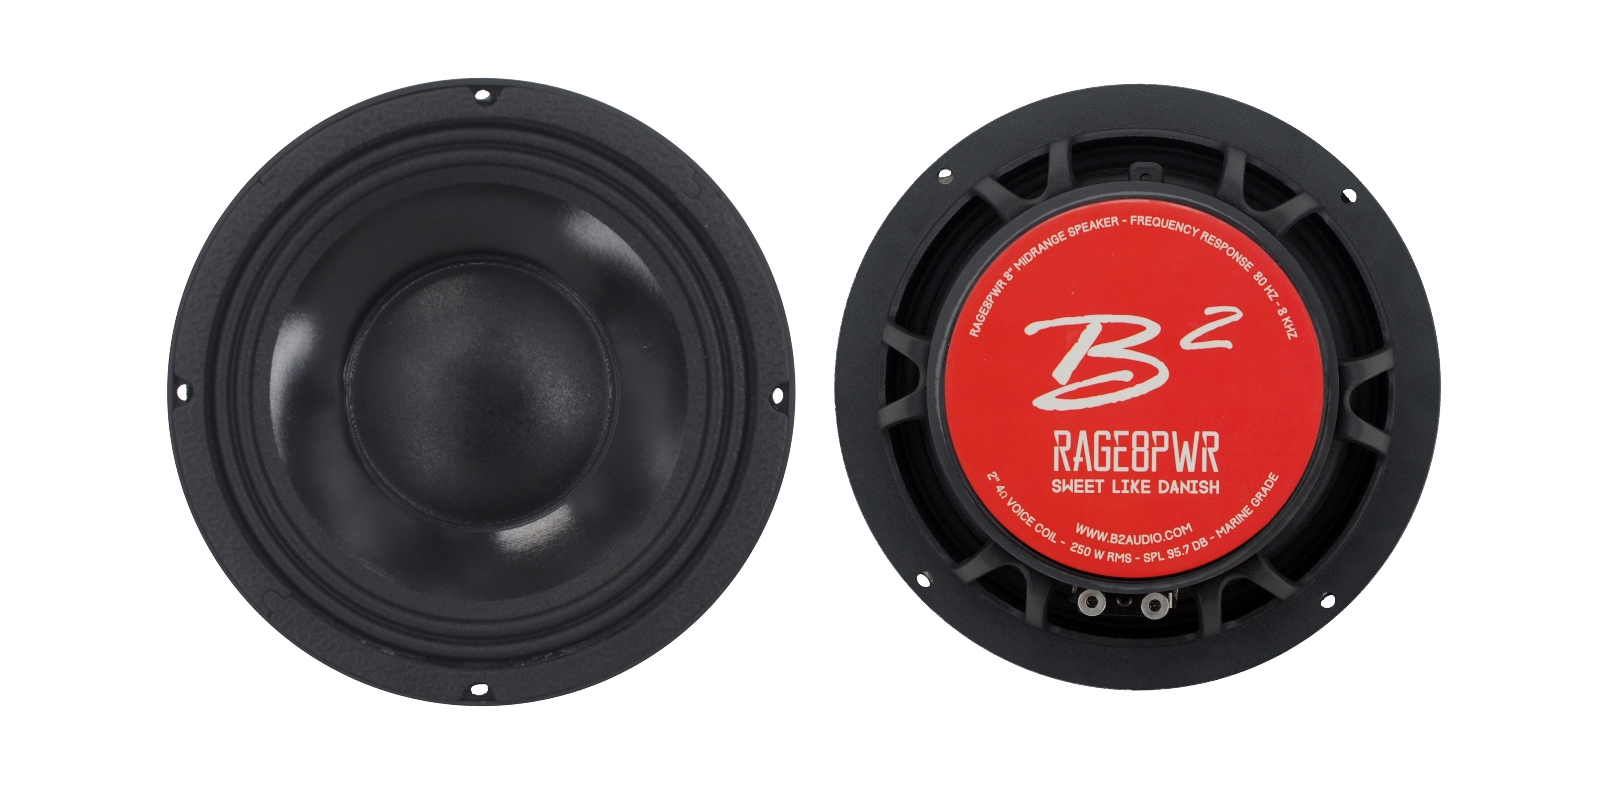 B2 audio RAGE8PWR